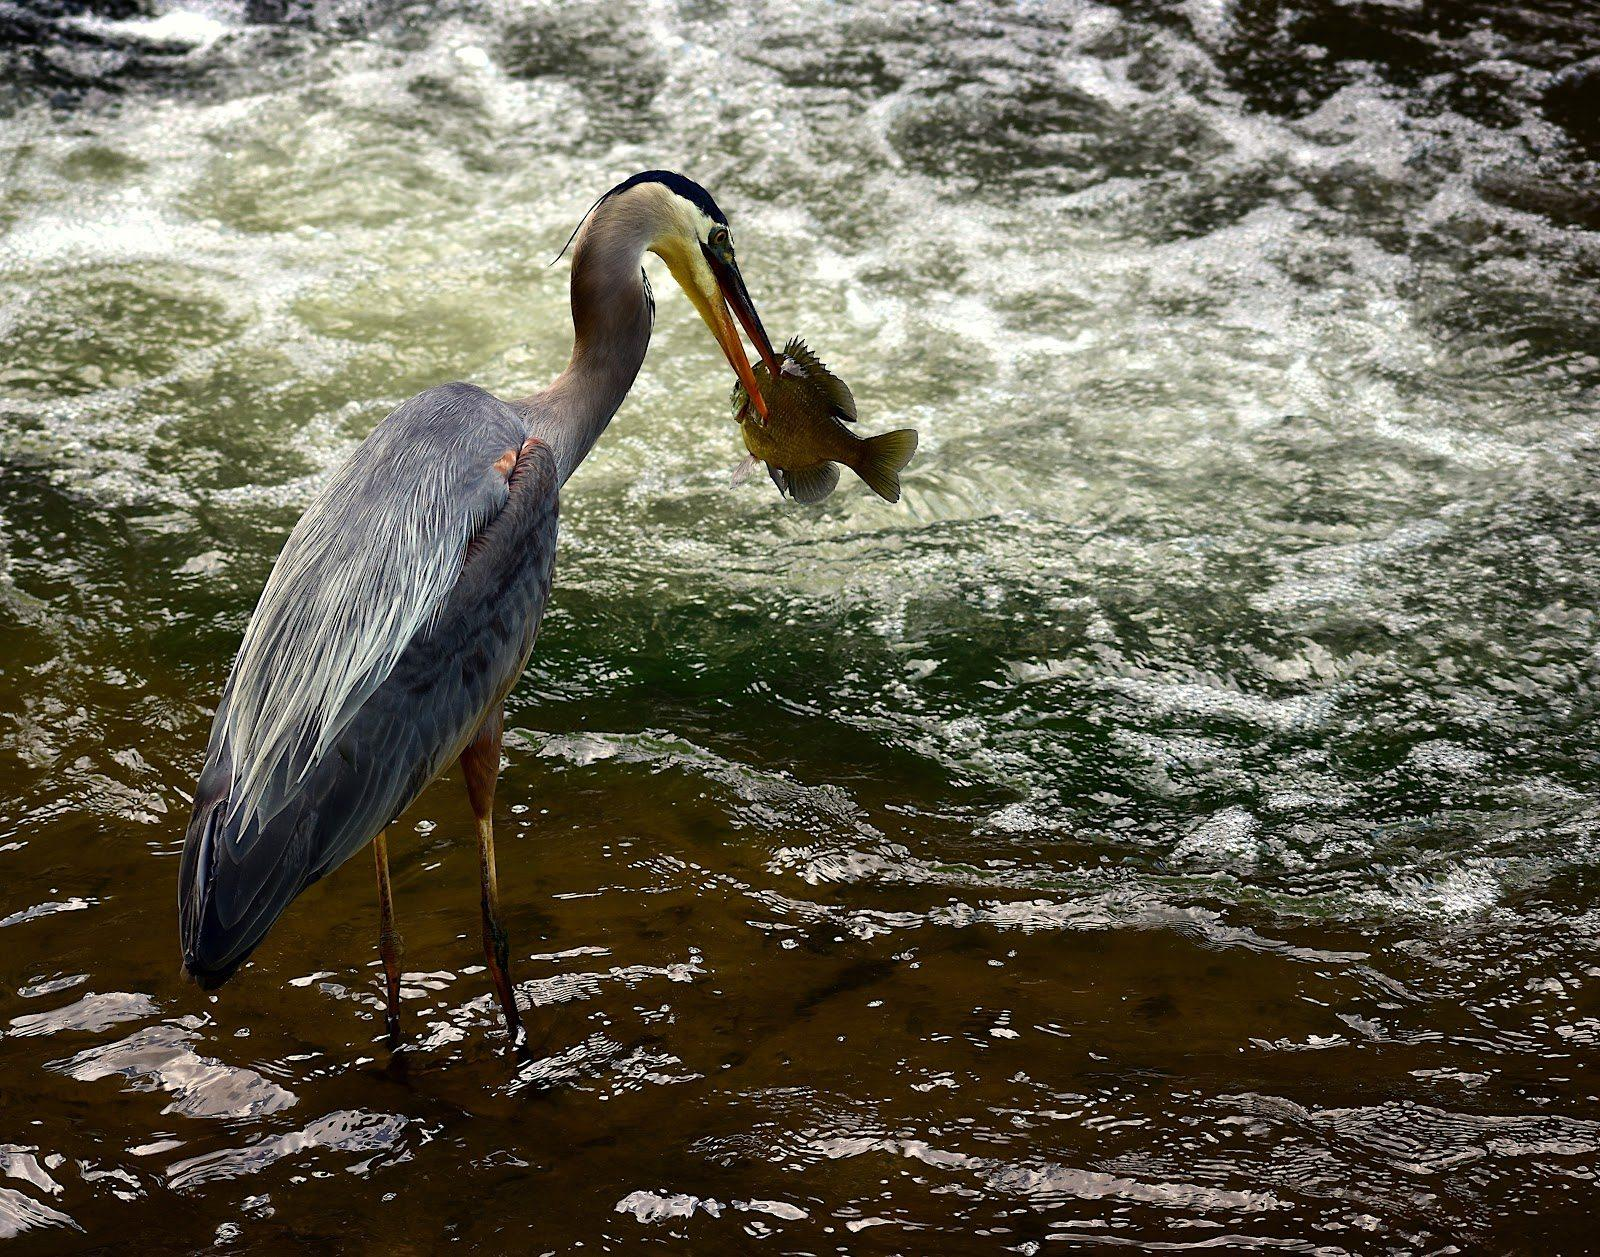 A heron catches a fish in this Bailey Maier photograph in the college's 58th annual Juried Student Exhibition